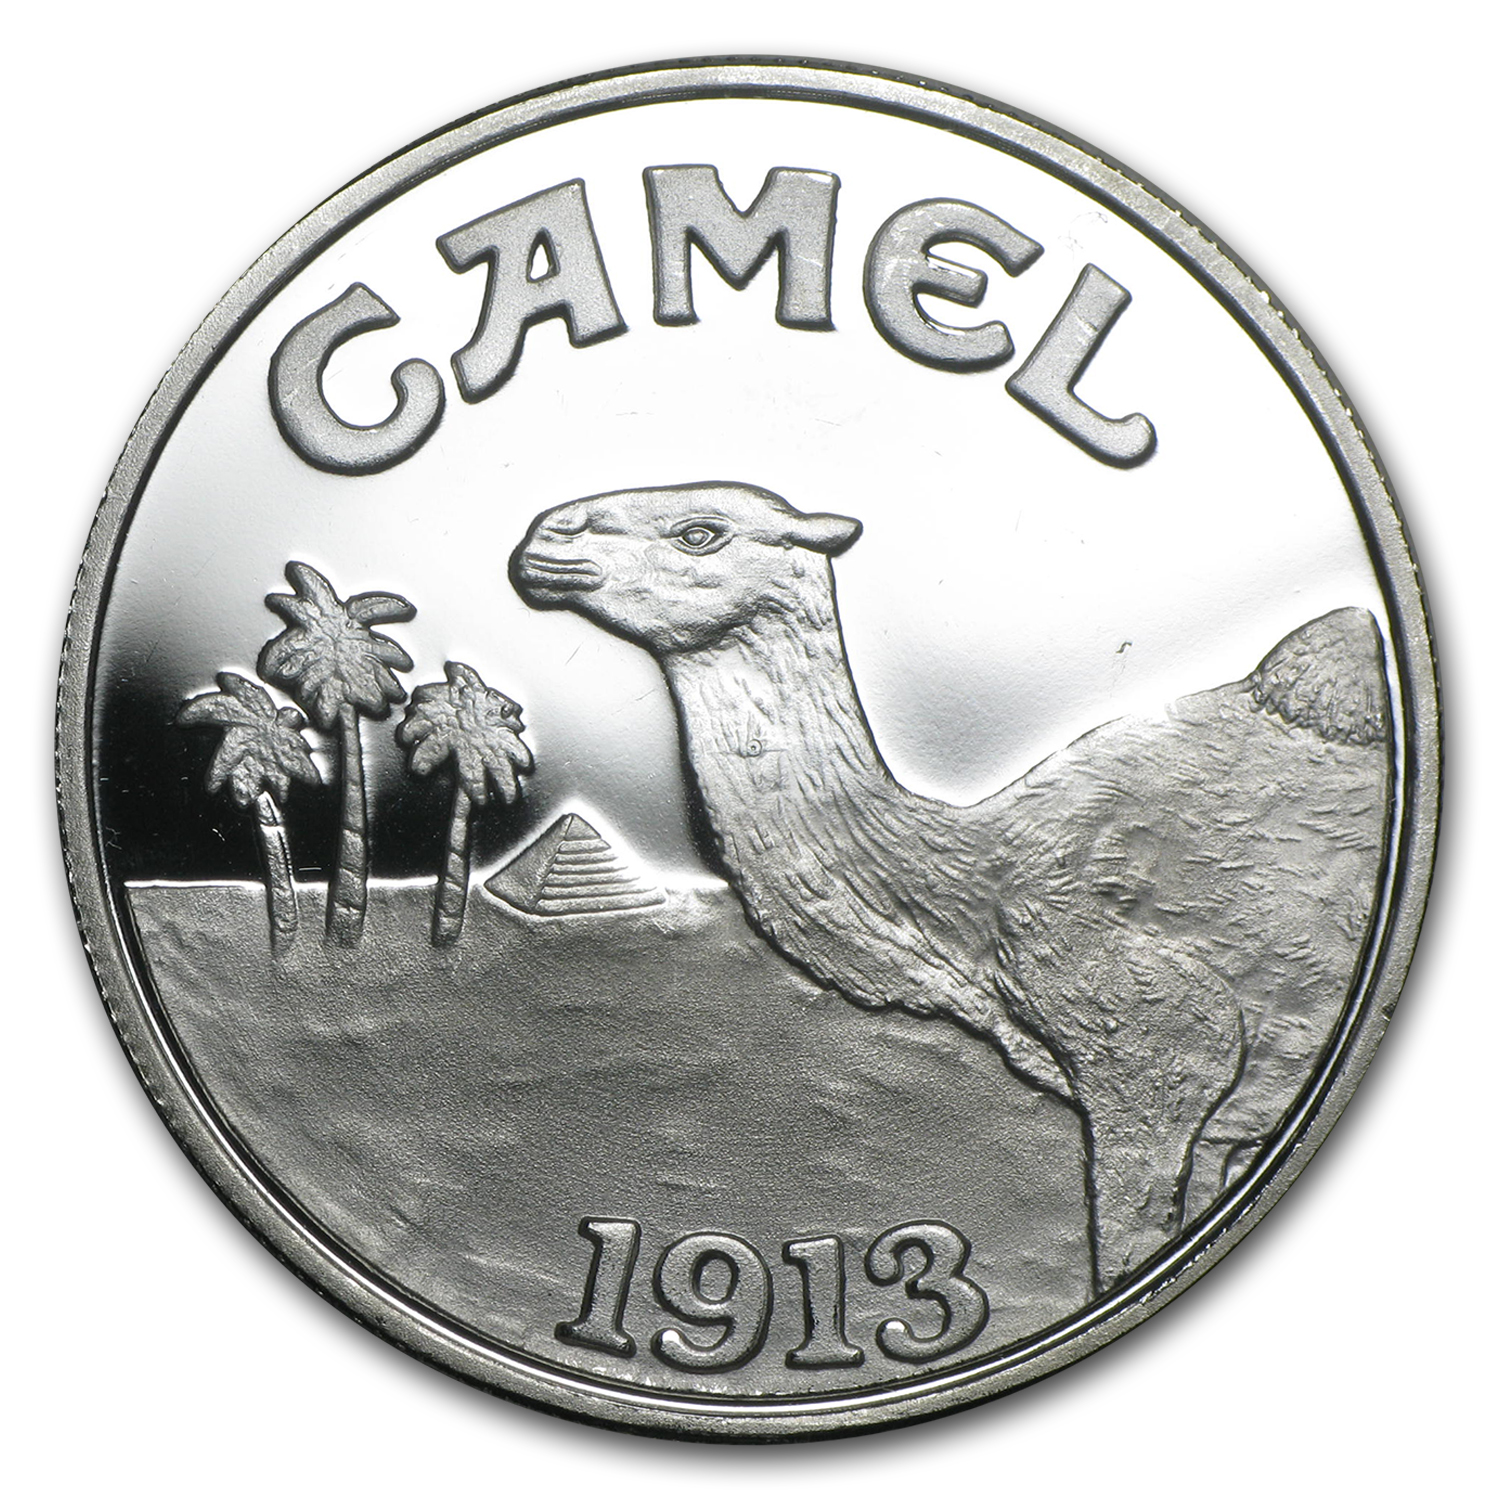 1 oz Silver Rounds - CAMEL